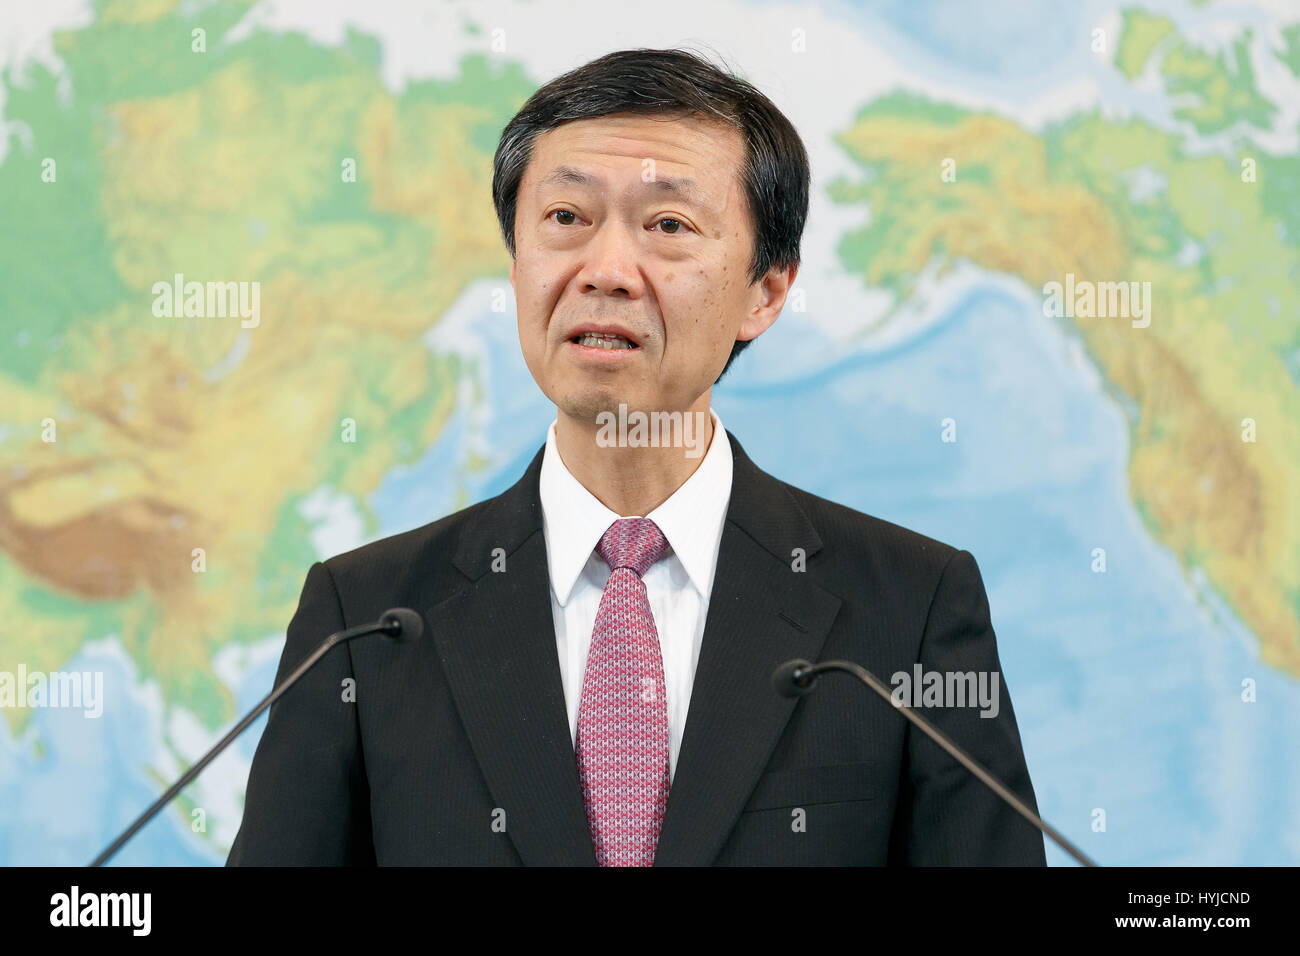 Tokyo, Japan. 5th Apr, 2017. Norio Maruyama, Foreign Press Secretary, speaks during a news conference at the Ministry - Stock Image